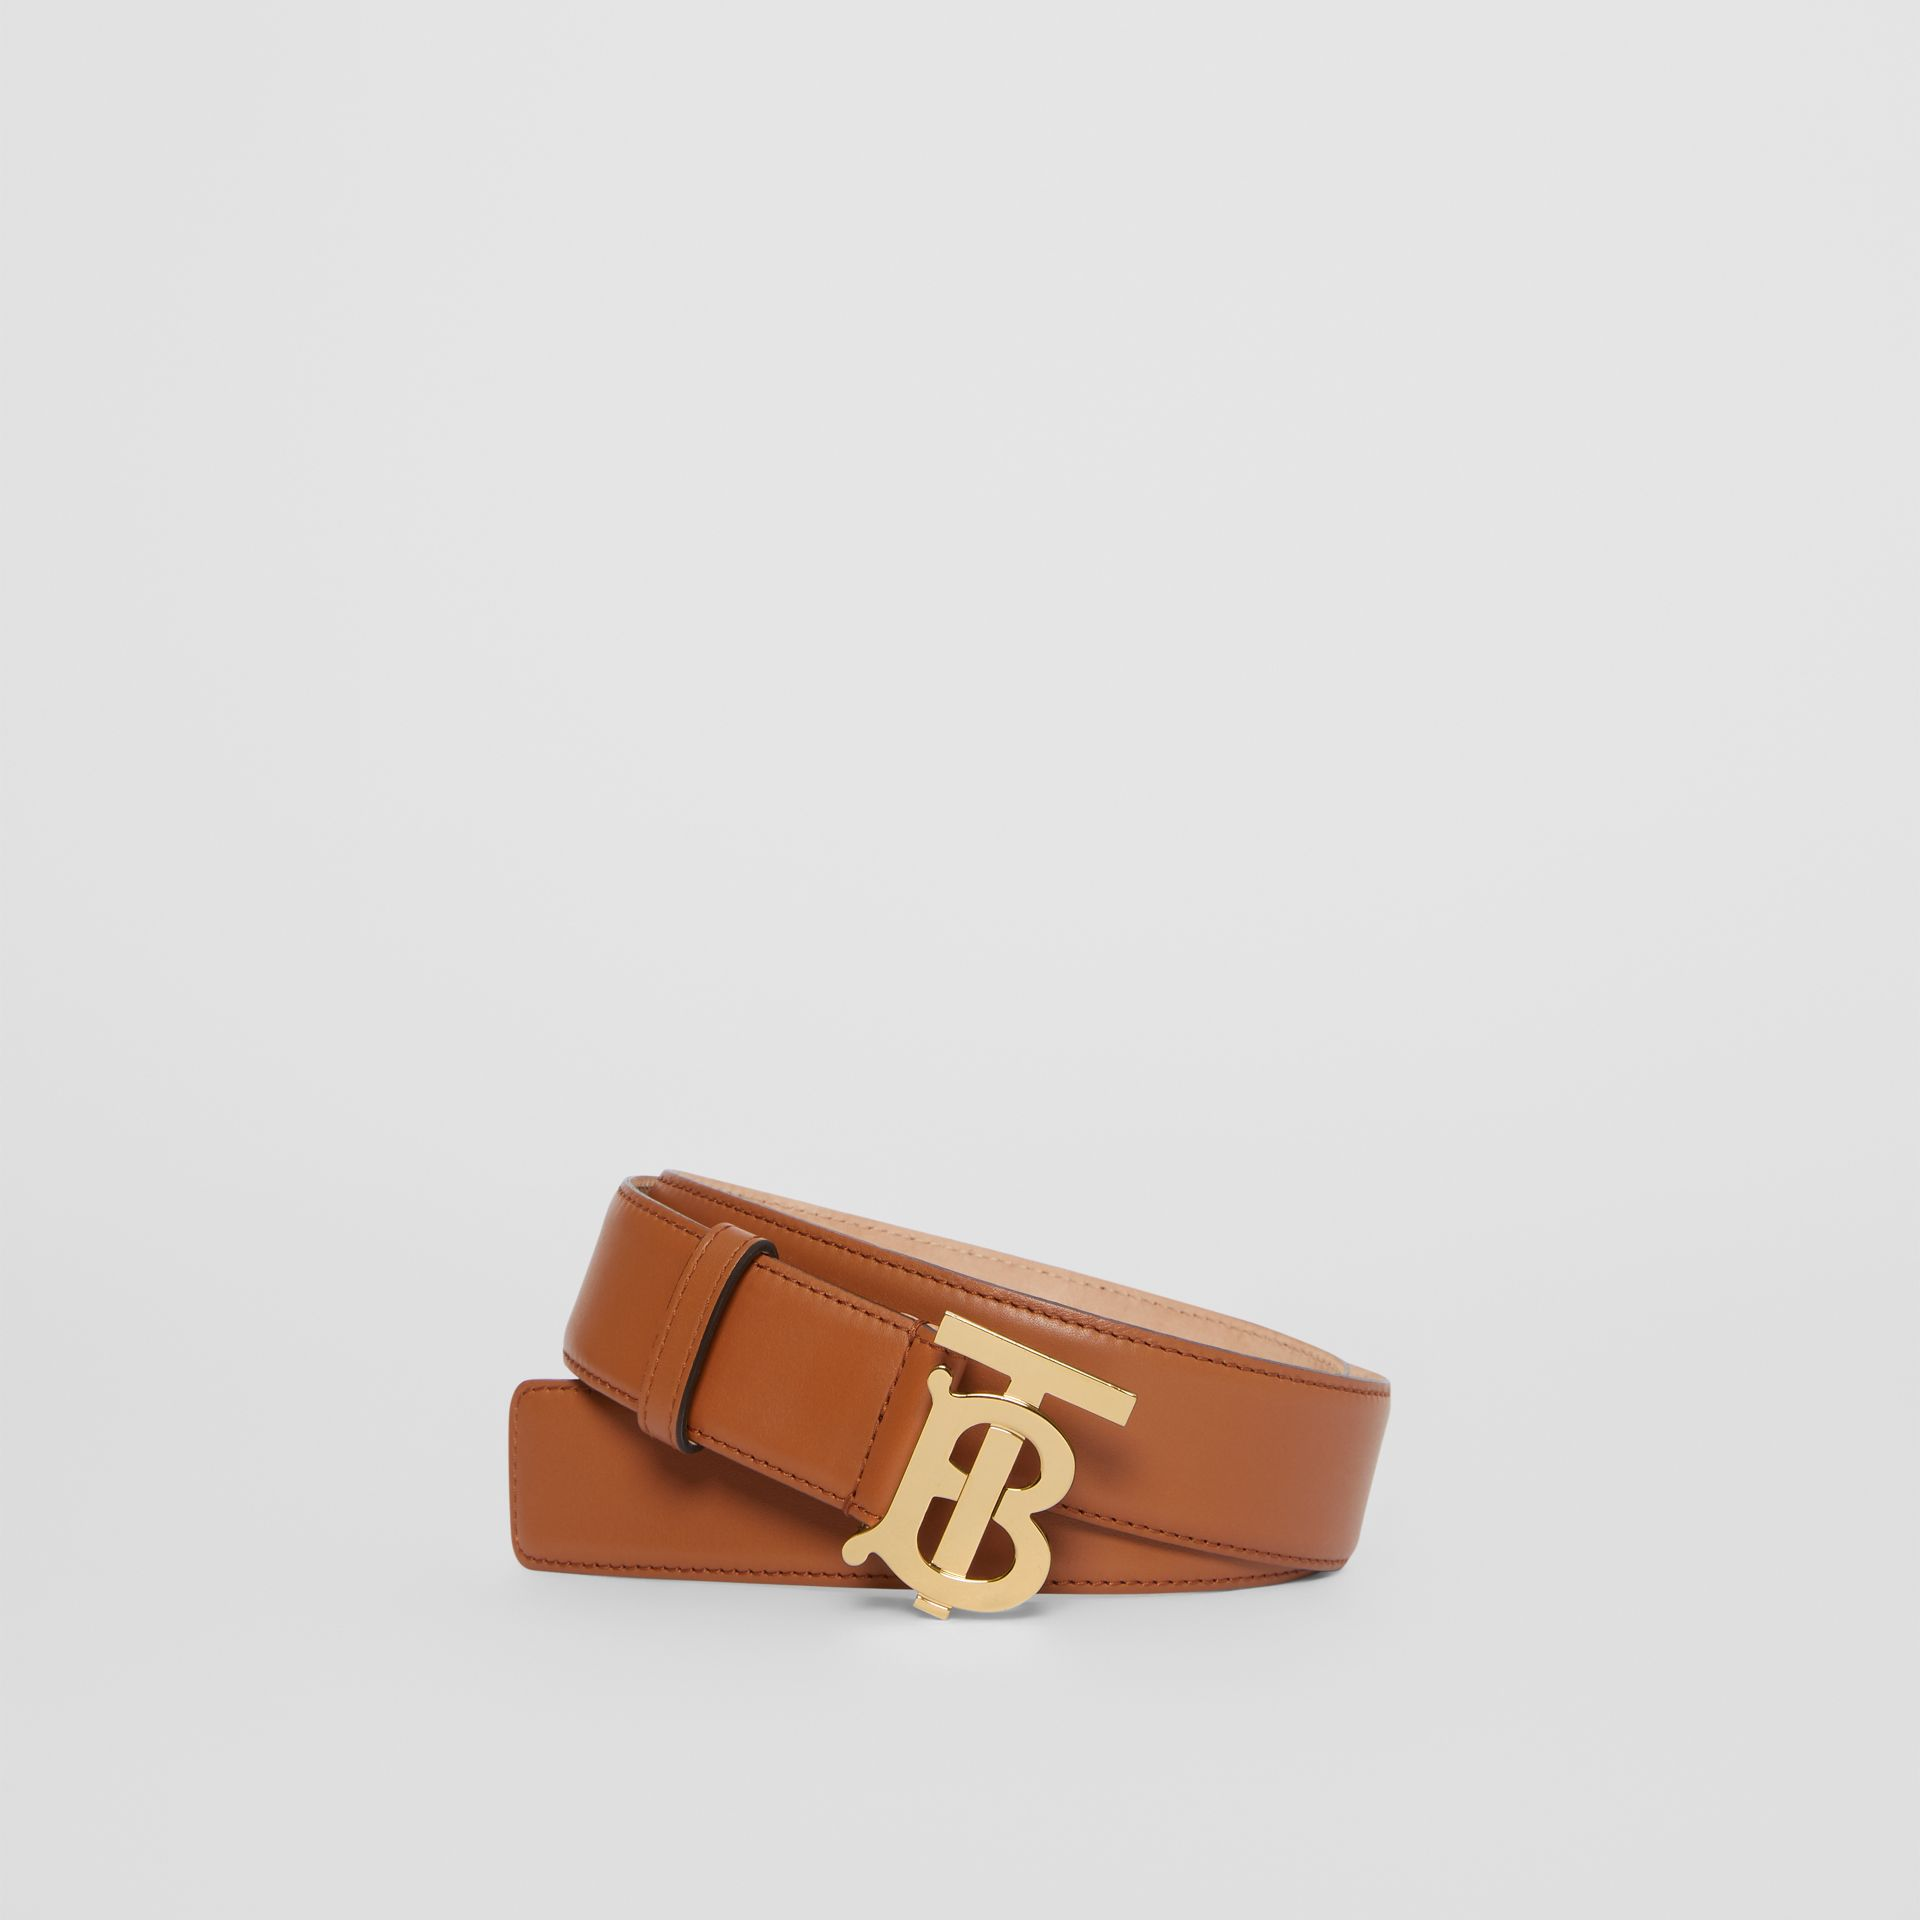 Monogram Motif Leather Belt in Tan - Women | Burberry Singapore - gallery image 0